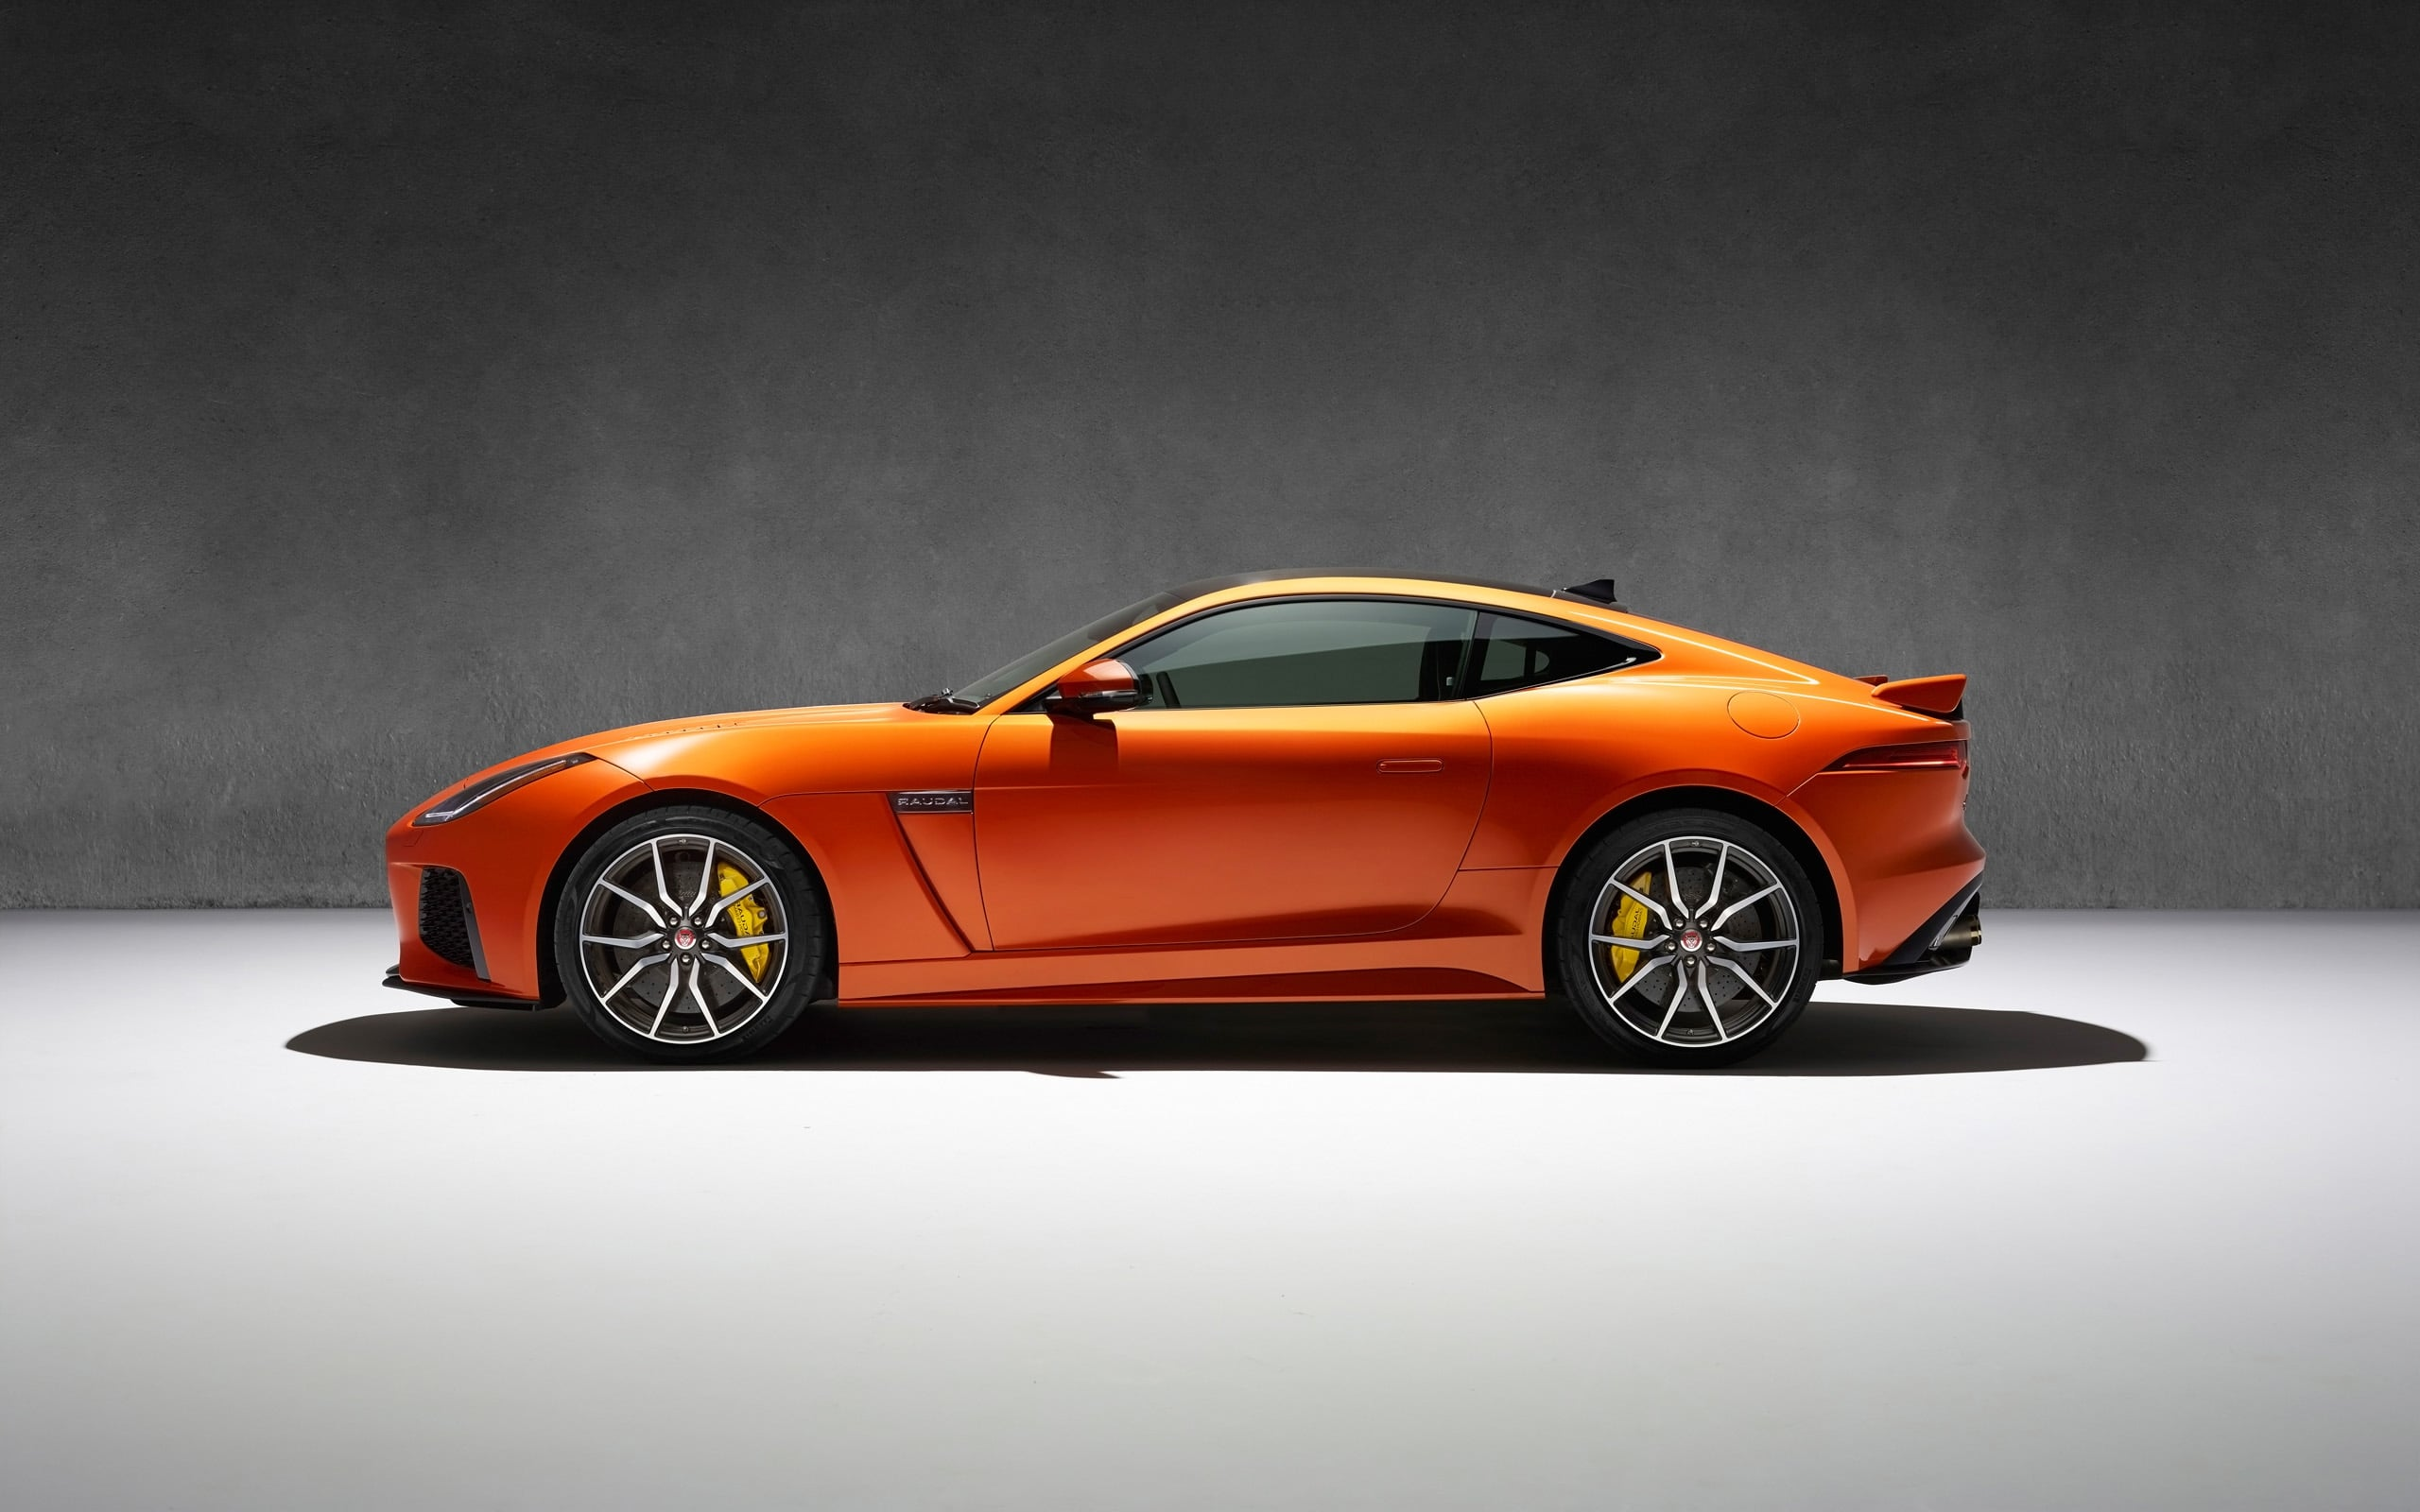 2017 Jaguar F Type SVR Coupe 1920x1080